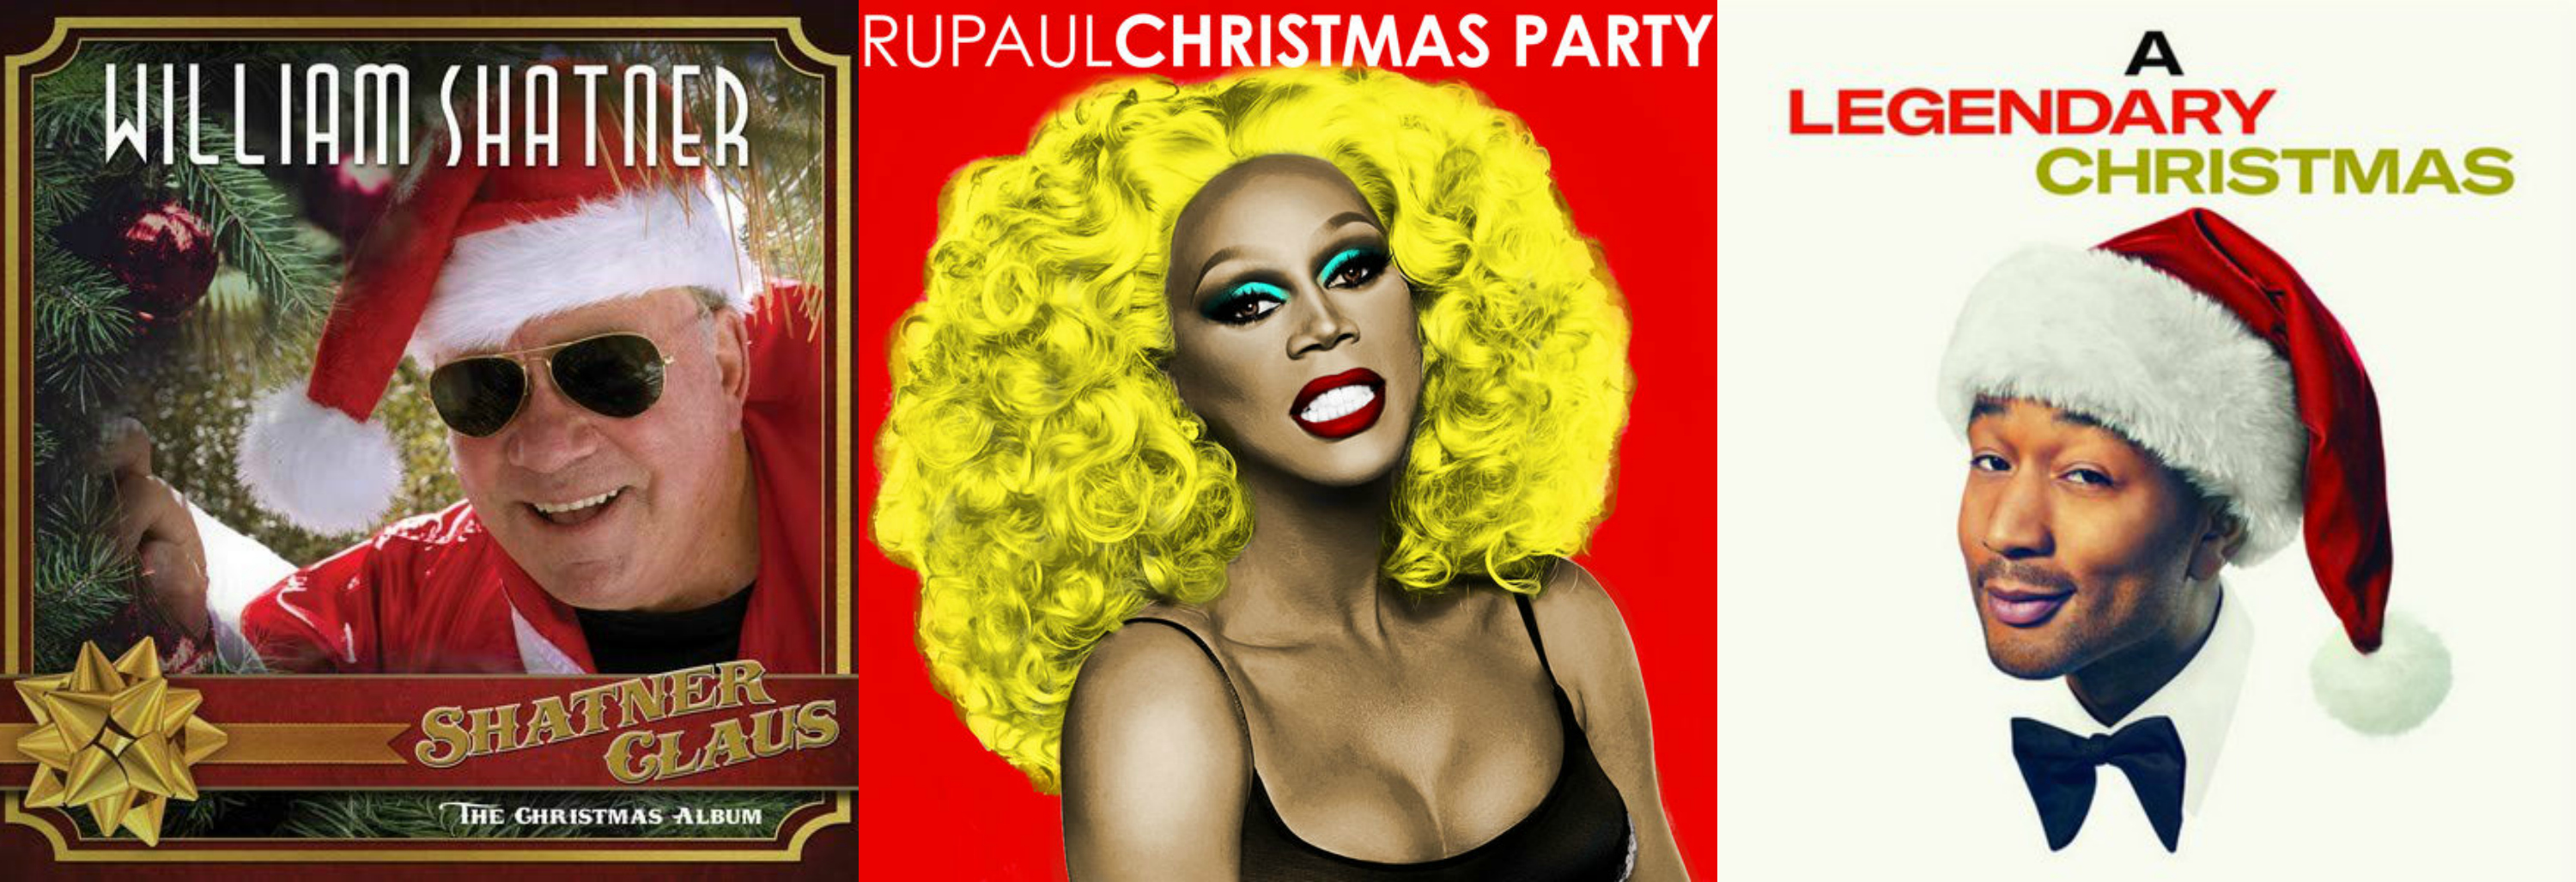 2018 Christmas Music: RuPaul, William Shatner, John Legend